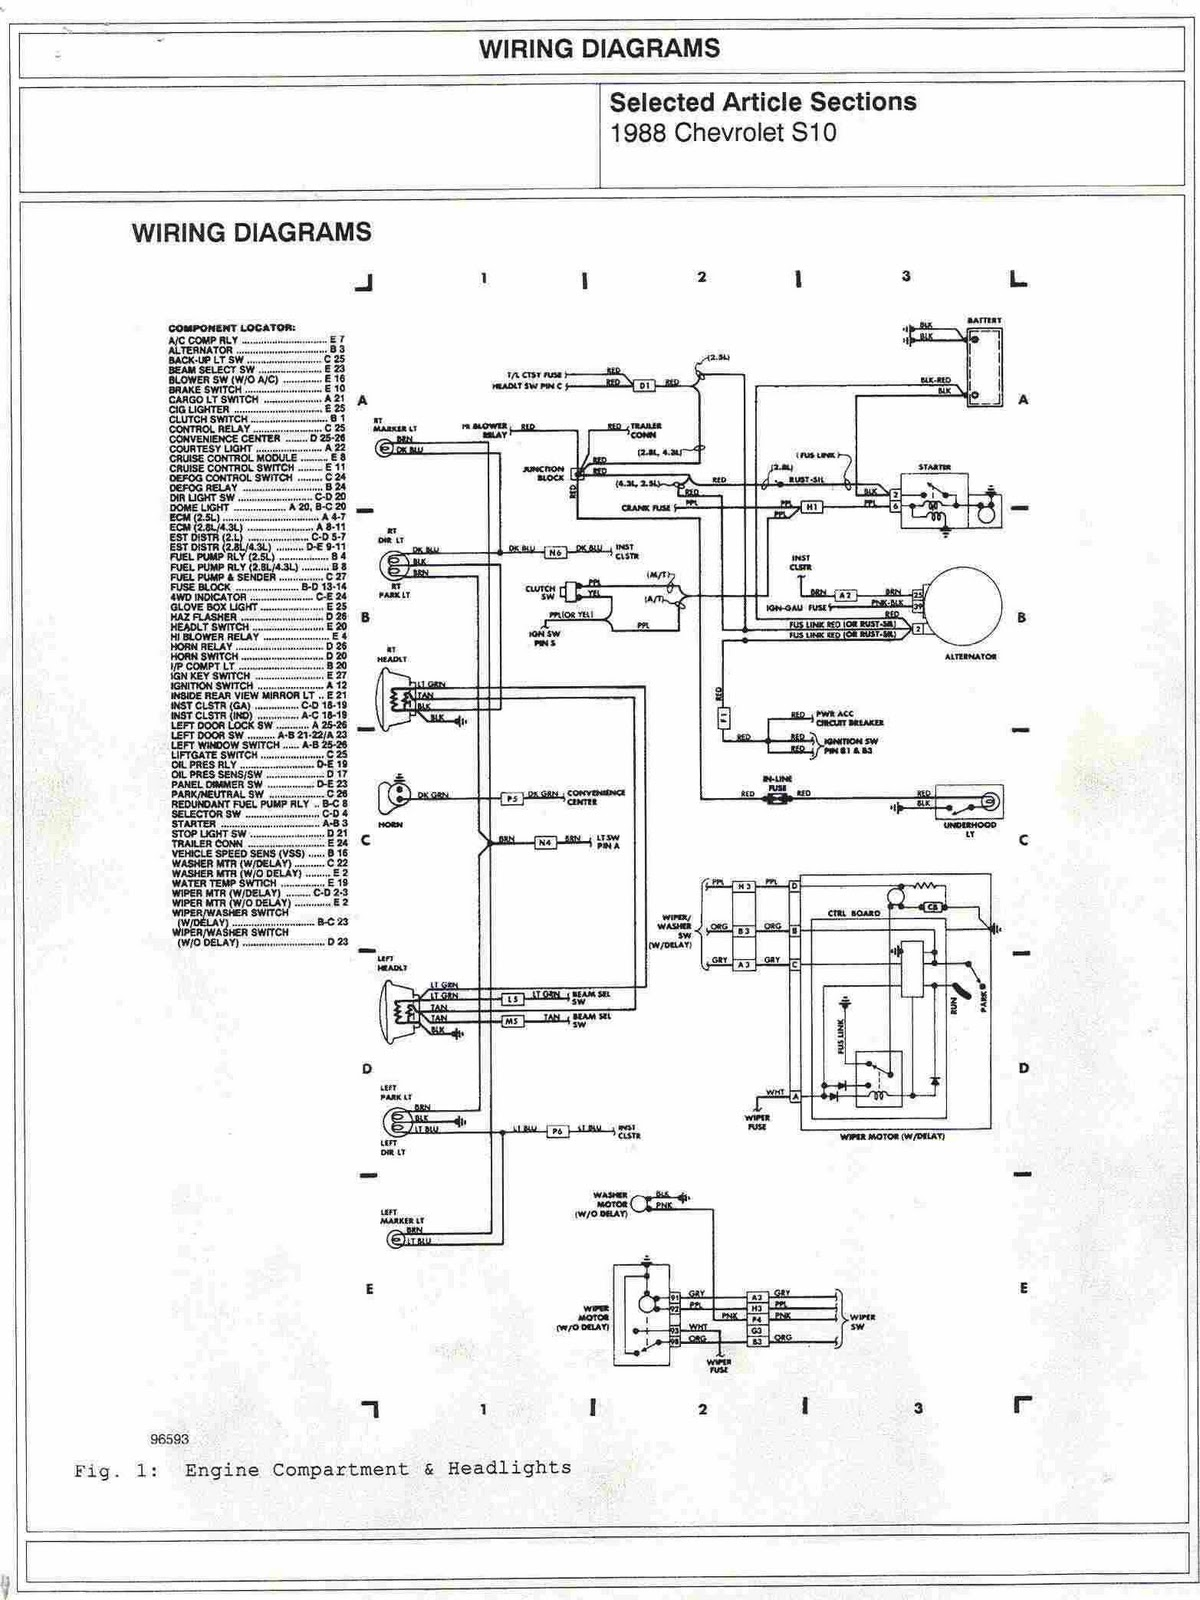 With Alternator Wiring Diagram On Chevrolet Captiva Fuse Box On - 10 on dolphin speedometer wiring, 2000 s10 vacuum hose diagram, 2000 s10 zr2 4wd vacuum line,